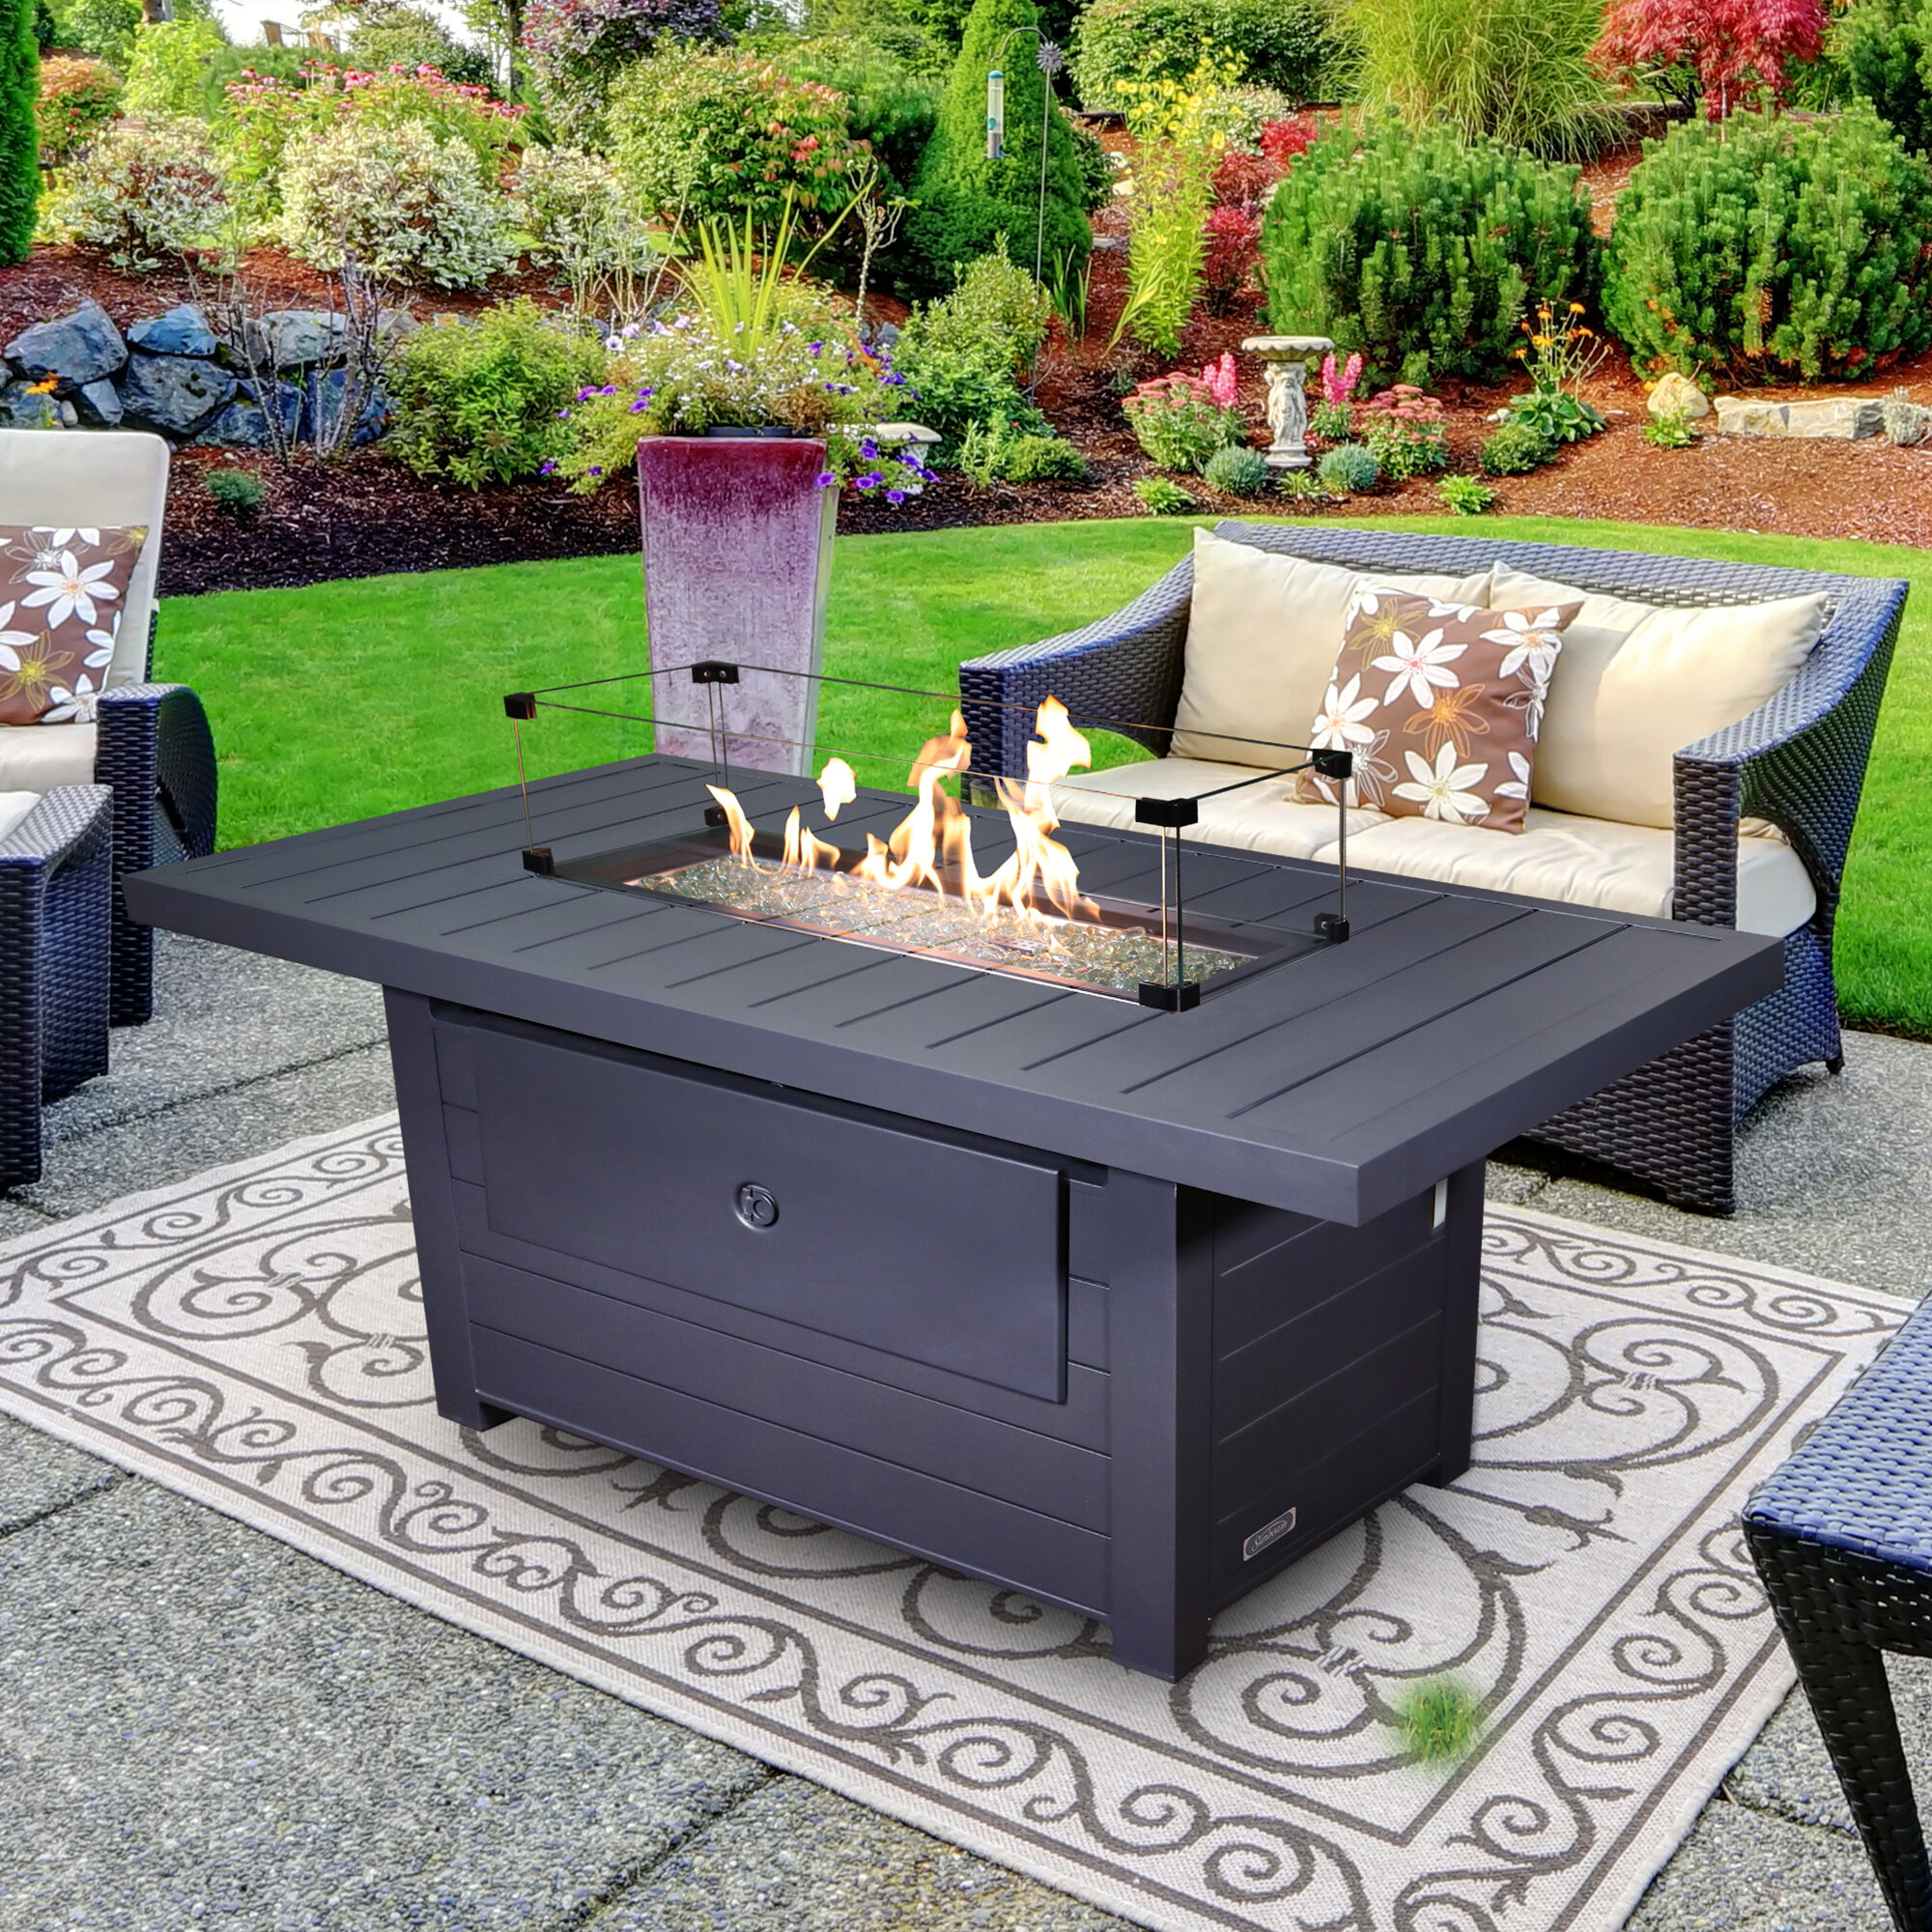 Patio Furniture With Fireplace.Aluminum Propane Natural Gas Outdoor Fireplace